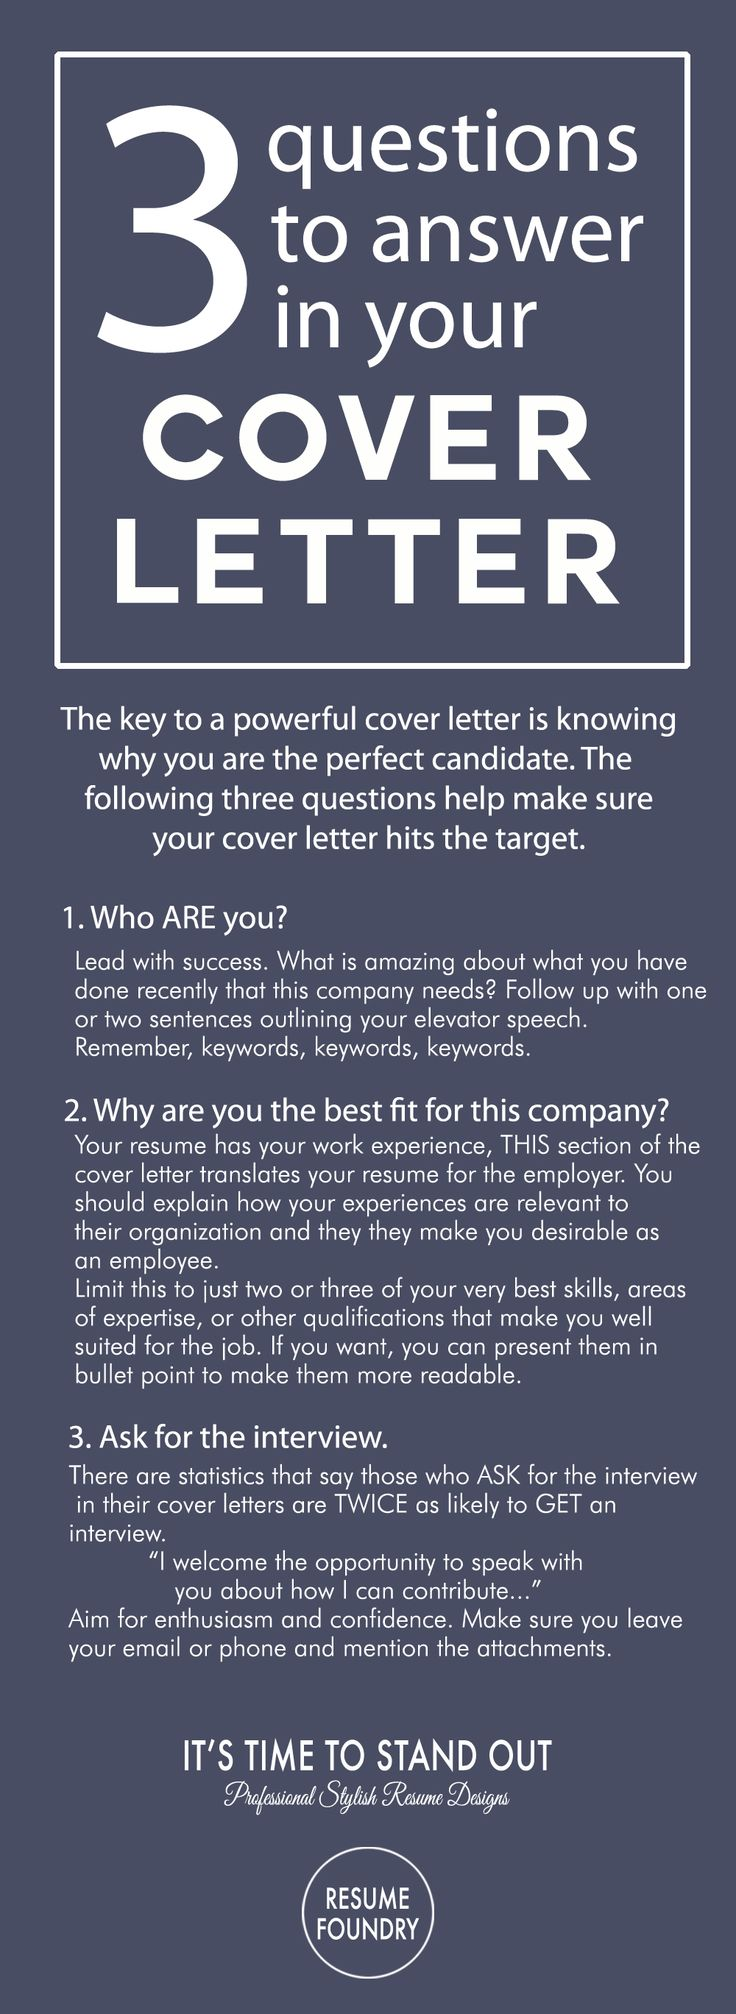 25 unique application cover letter ideas on pinterest job